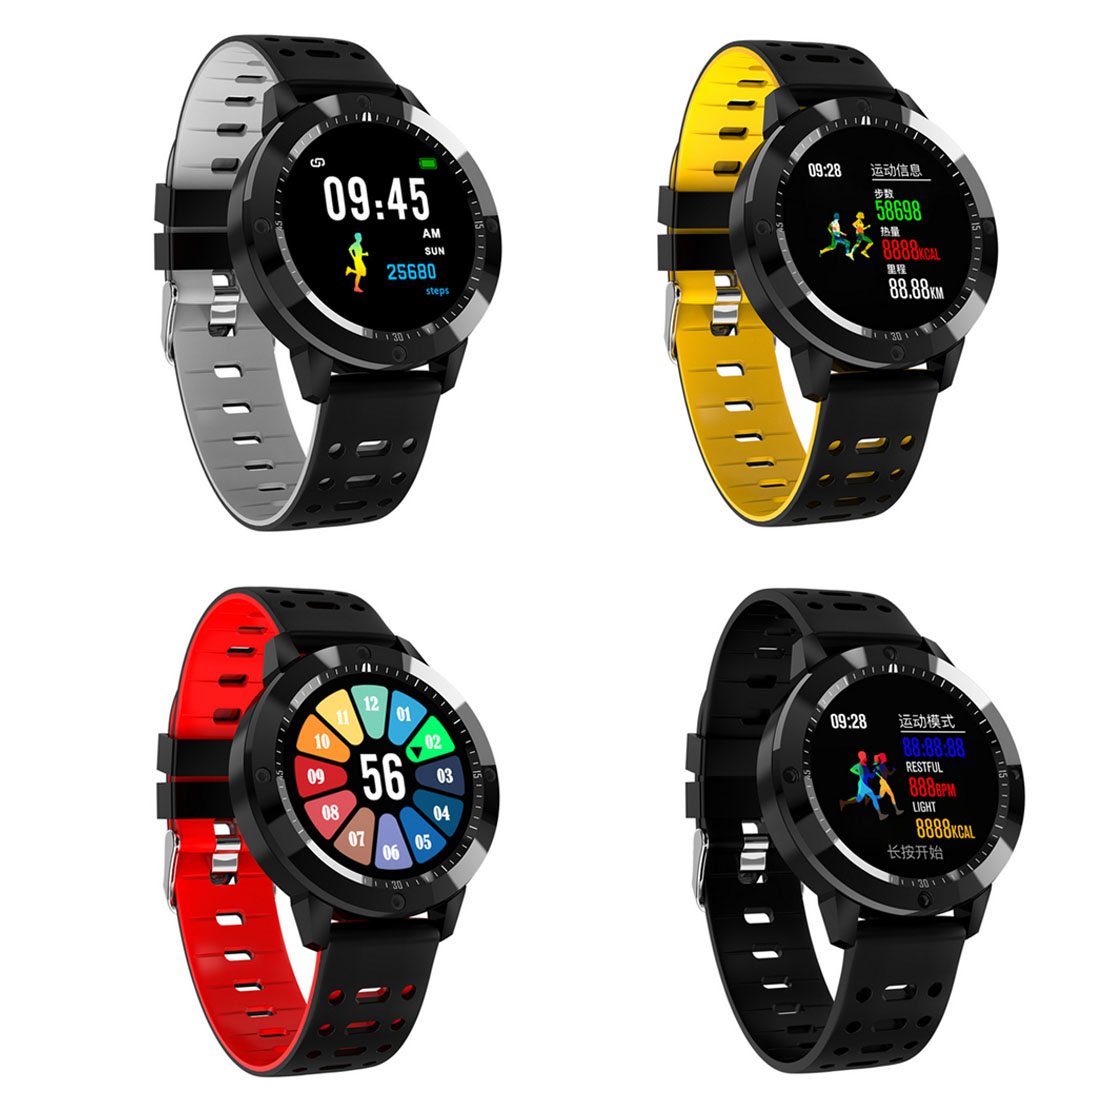 CF58 Smart watch IP67 waterproof Tempered glass Activity Fitness tracker Heart rate monitor Sports Men women smartwatch colmi v11 smart watch ip67 waterproof tempered glass activity fitness tracker heart rate monitor brim men women smartwatch